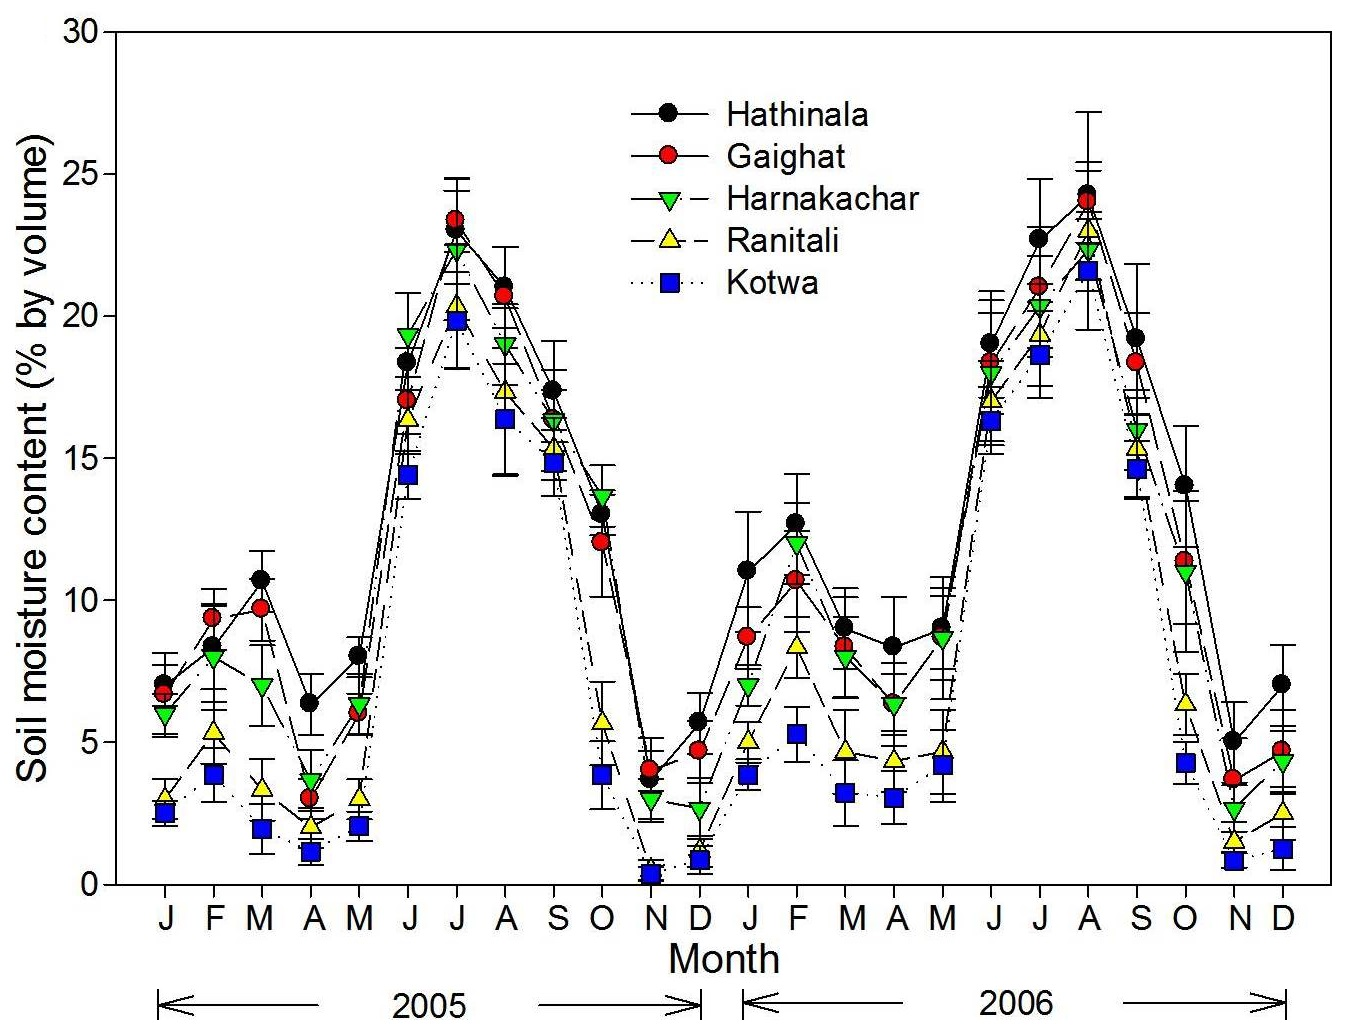 Monthly soil moisture content at the five study sites from January 2005 to December 2006.